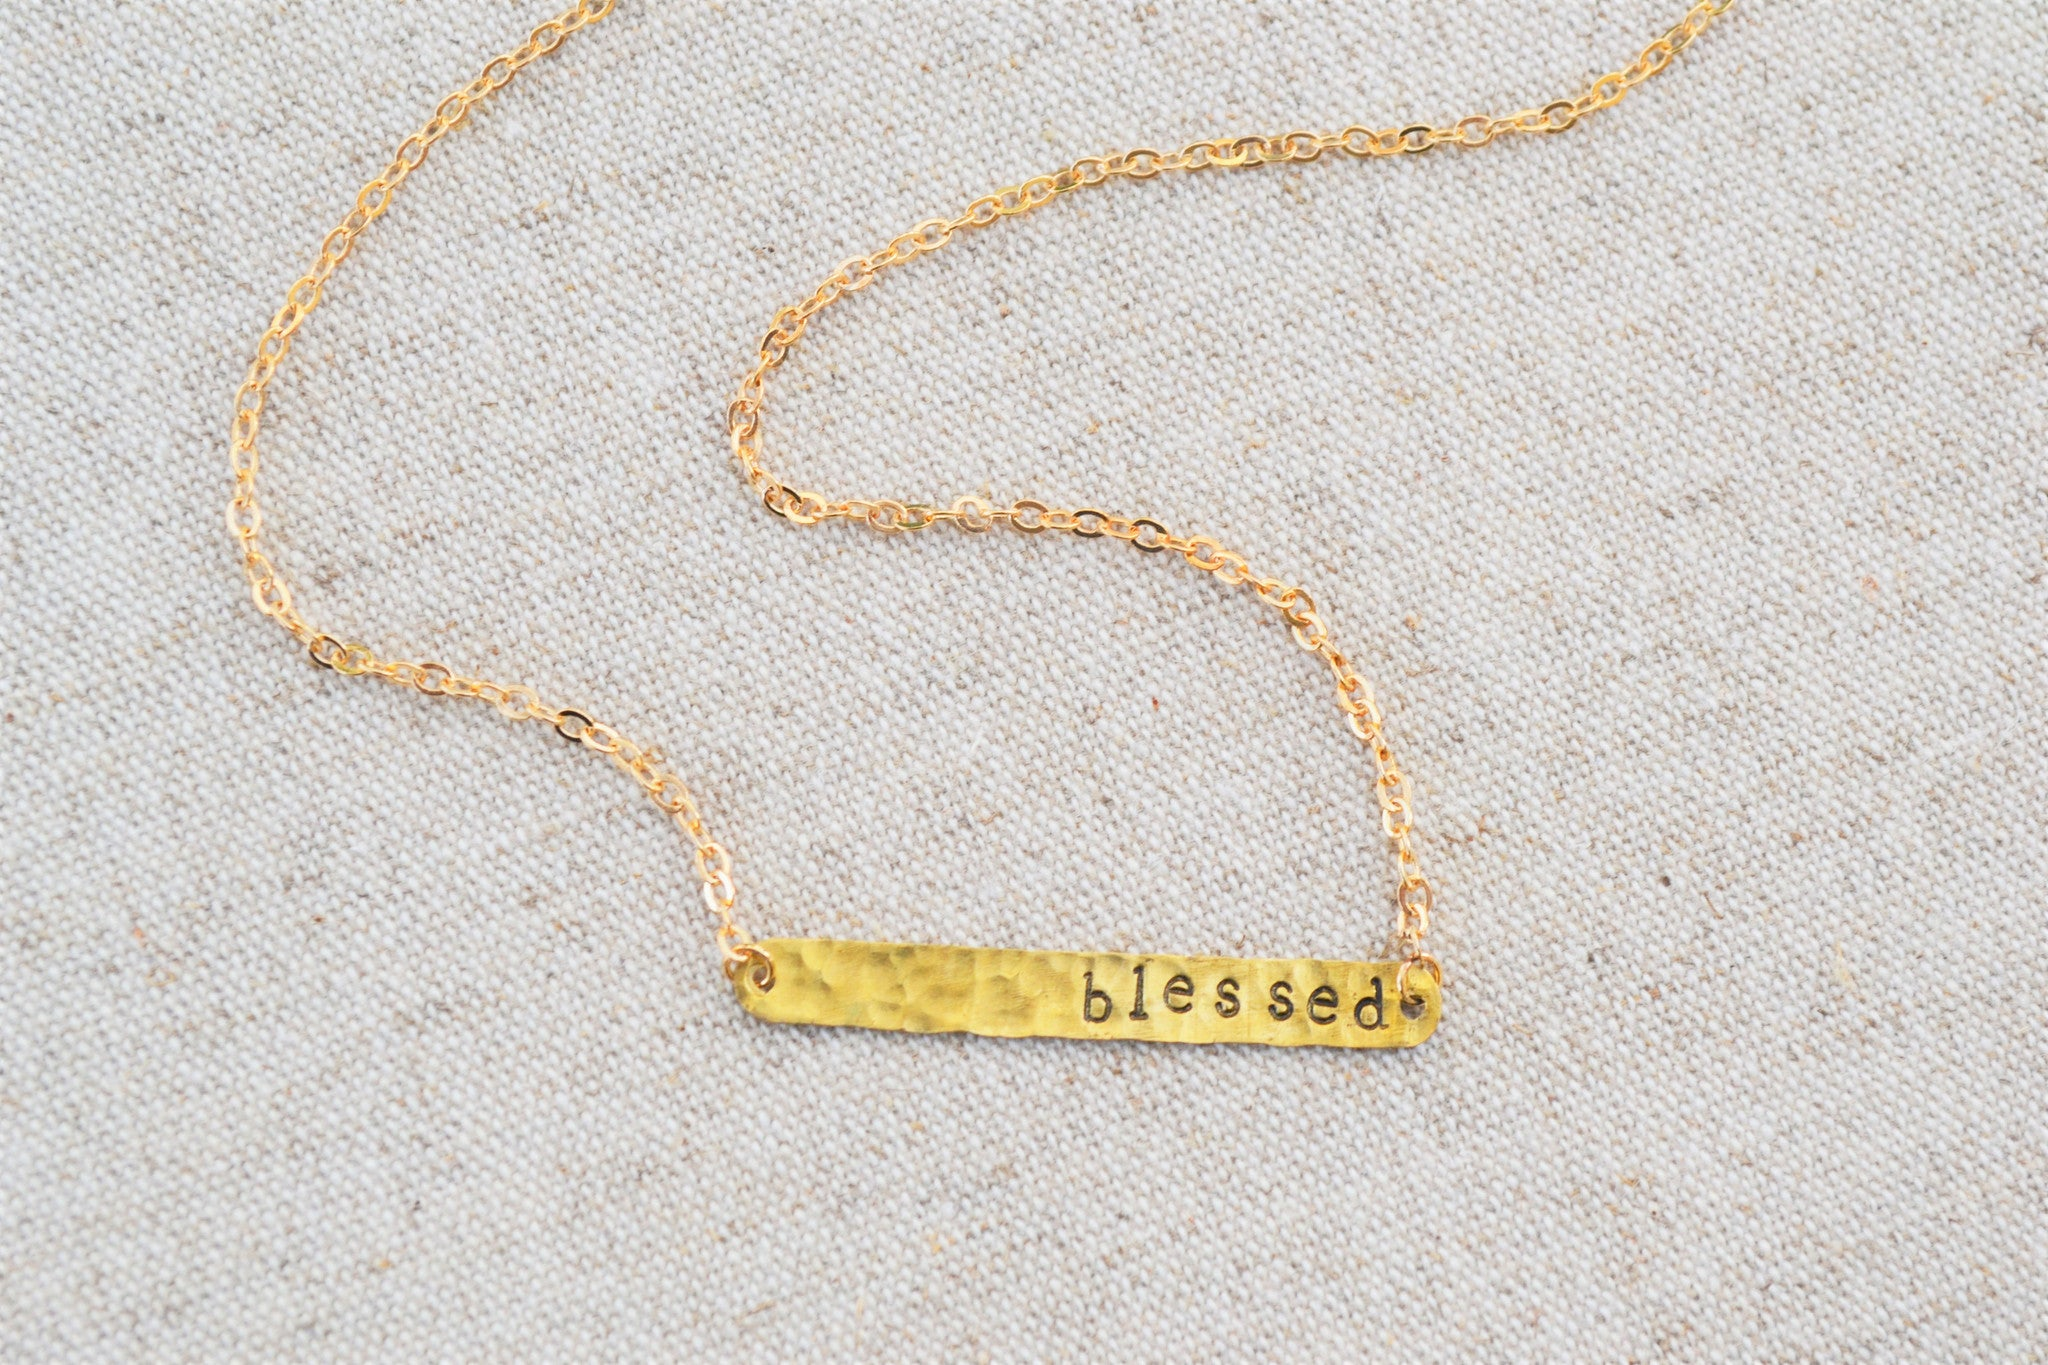 Custom necklace, personalized necklace, stamped necklace, stamped jewelry, gold necklace